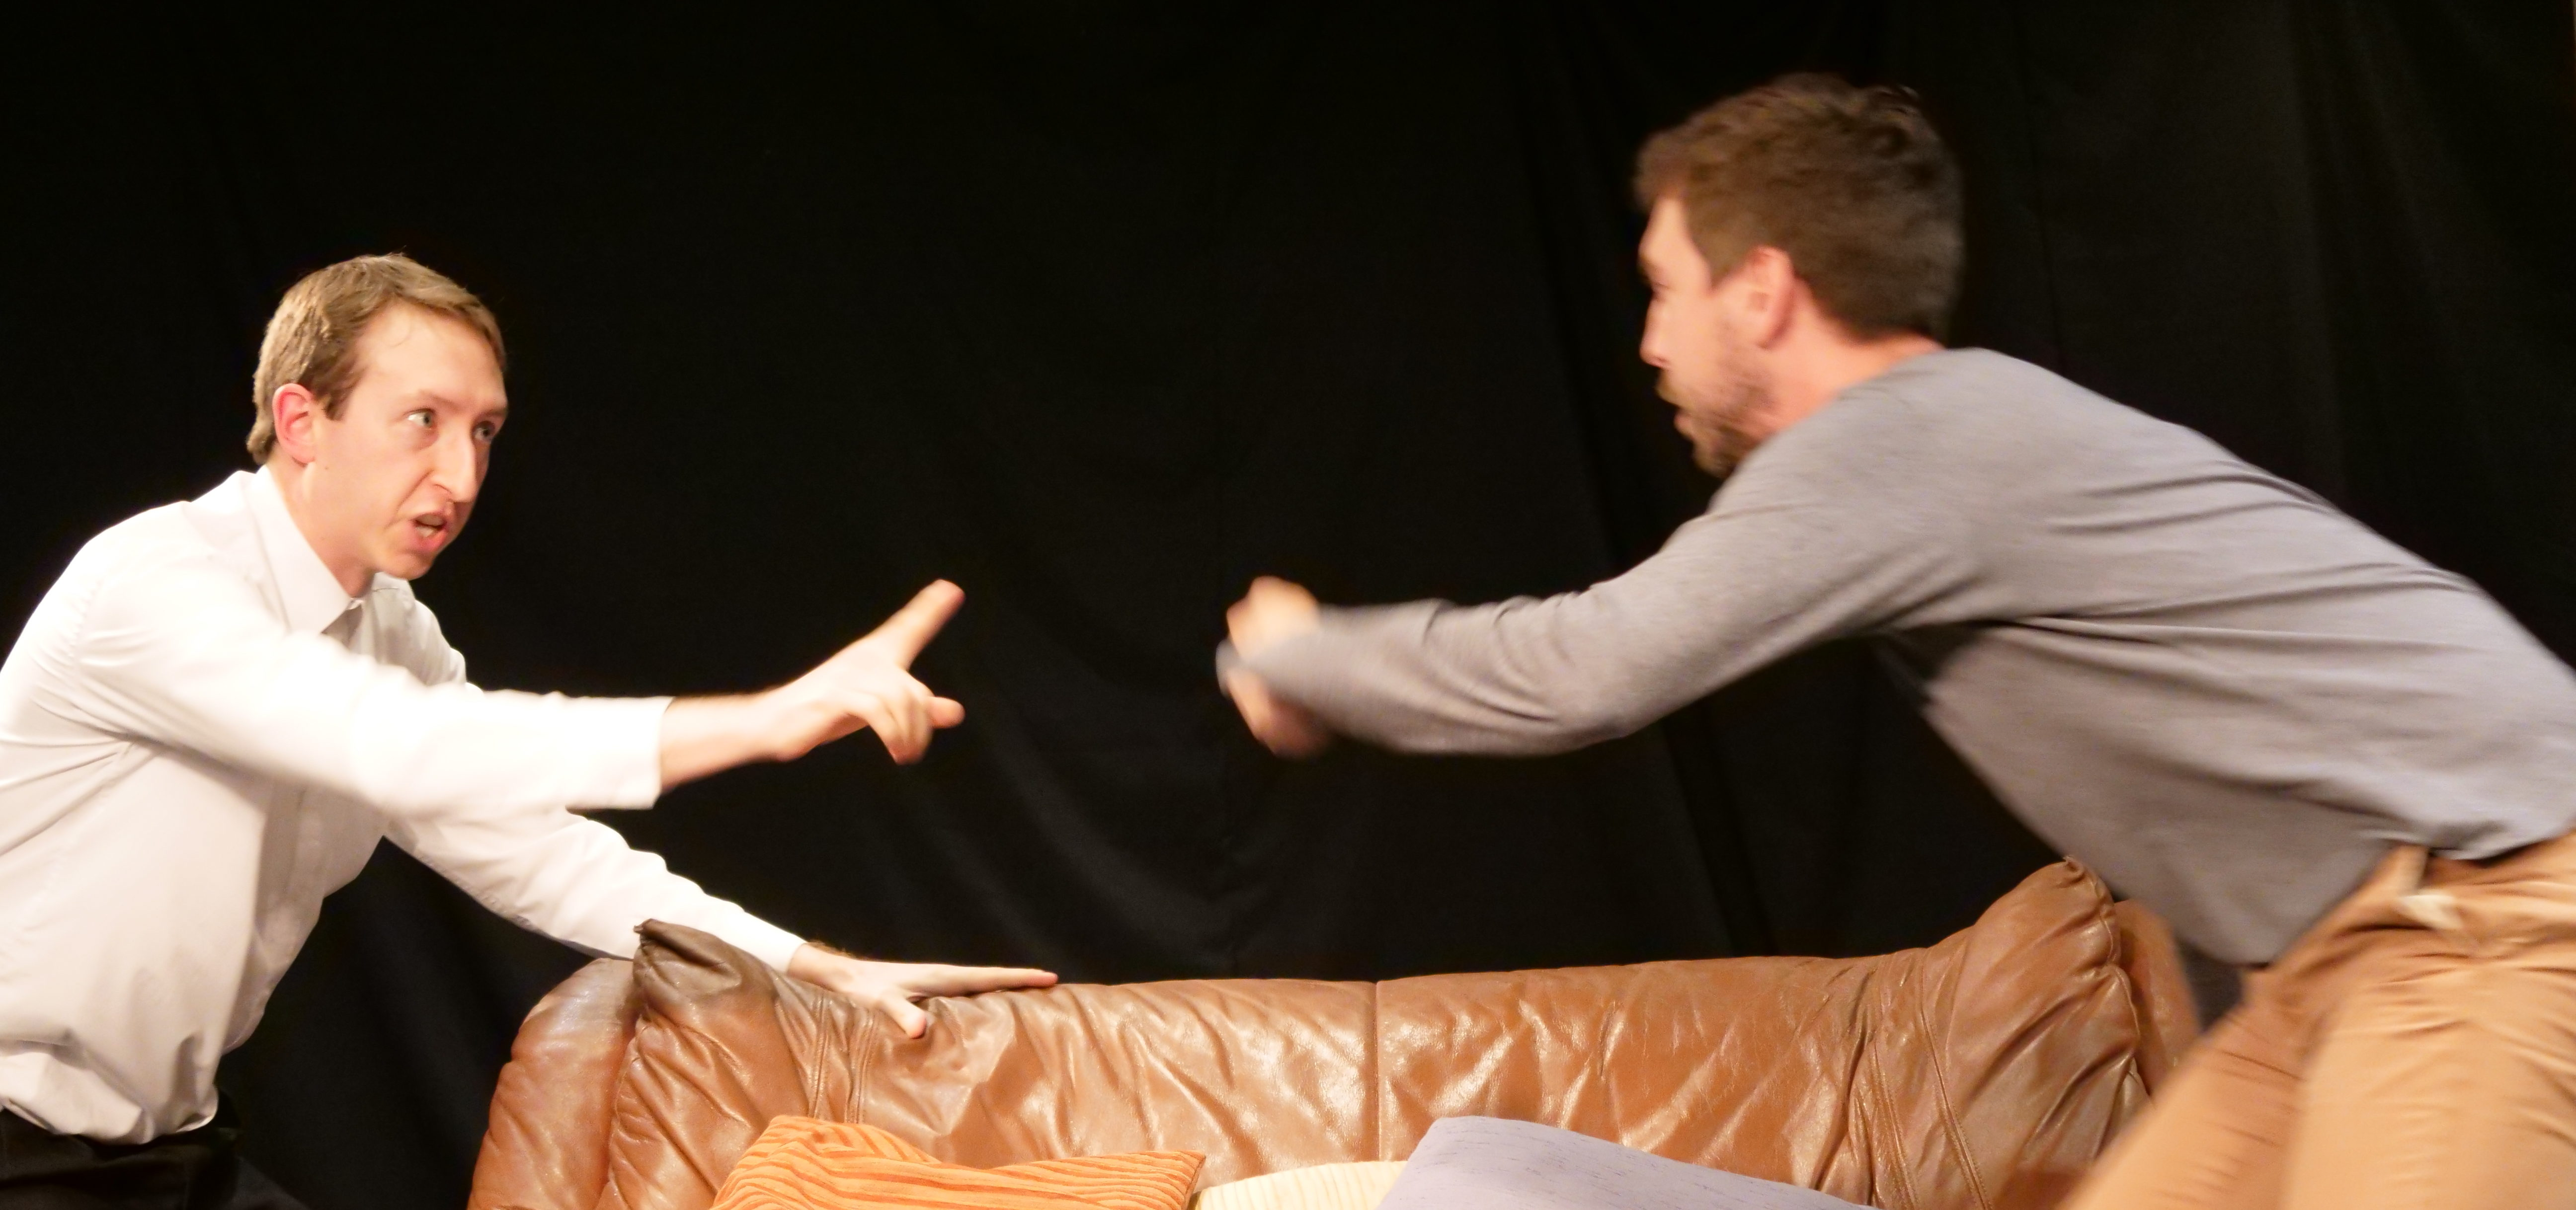 Main Method Acting Intensive Course in London